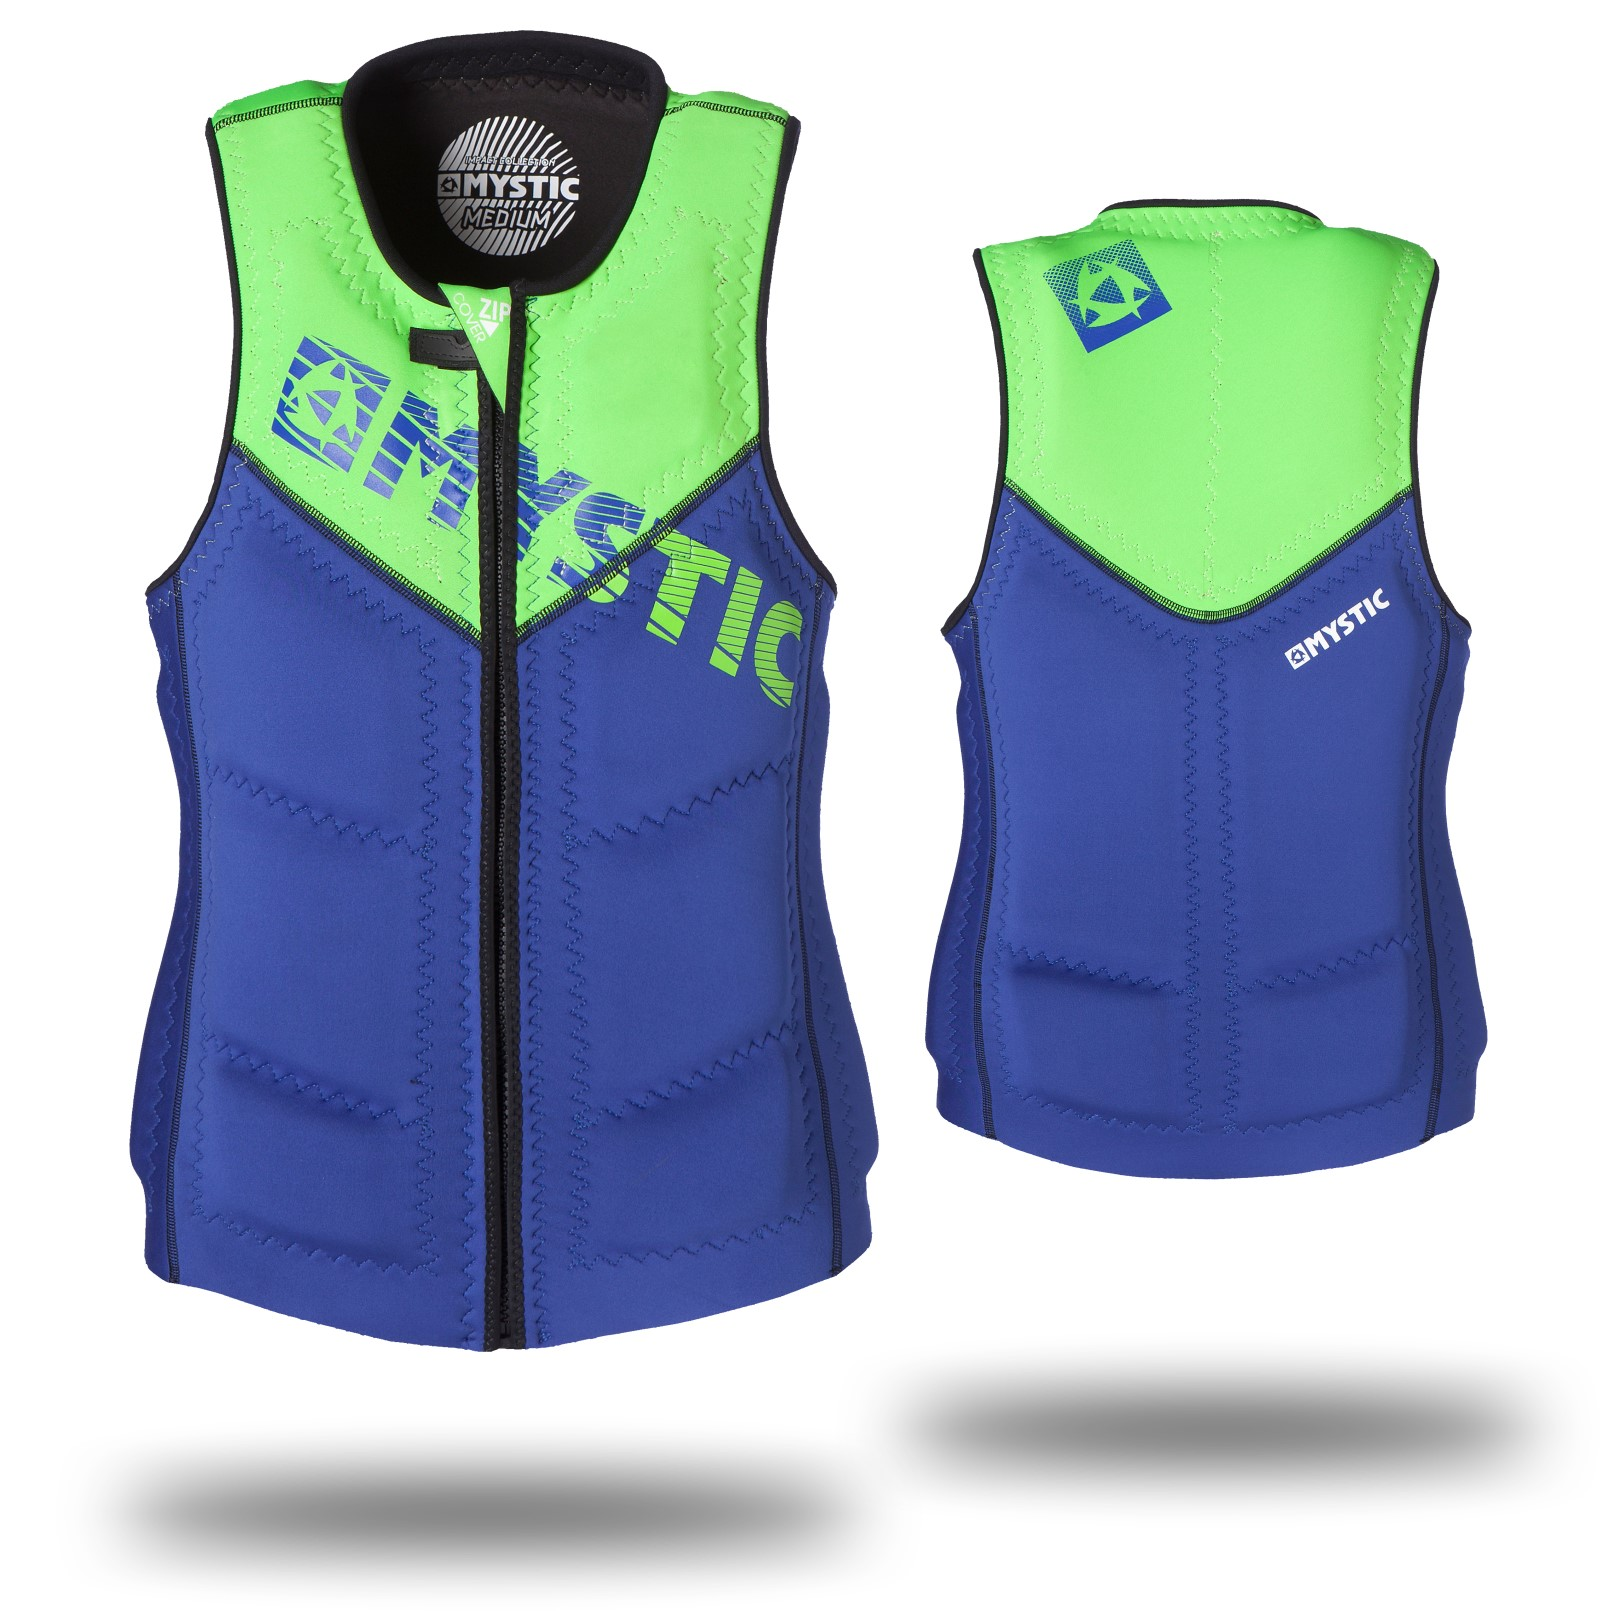 STAR WAKEBOARD VEST ZIP - NAVY MYSTIC 2016